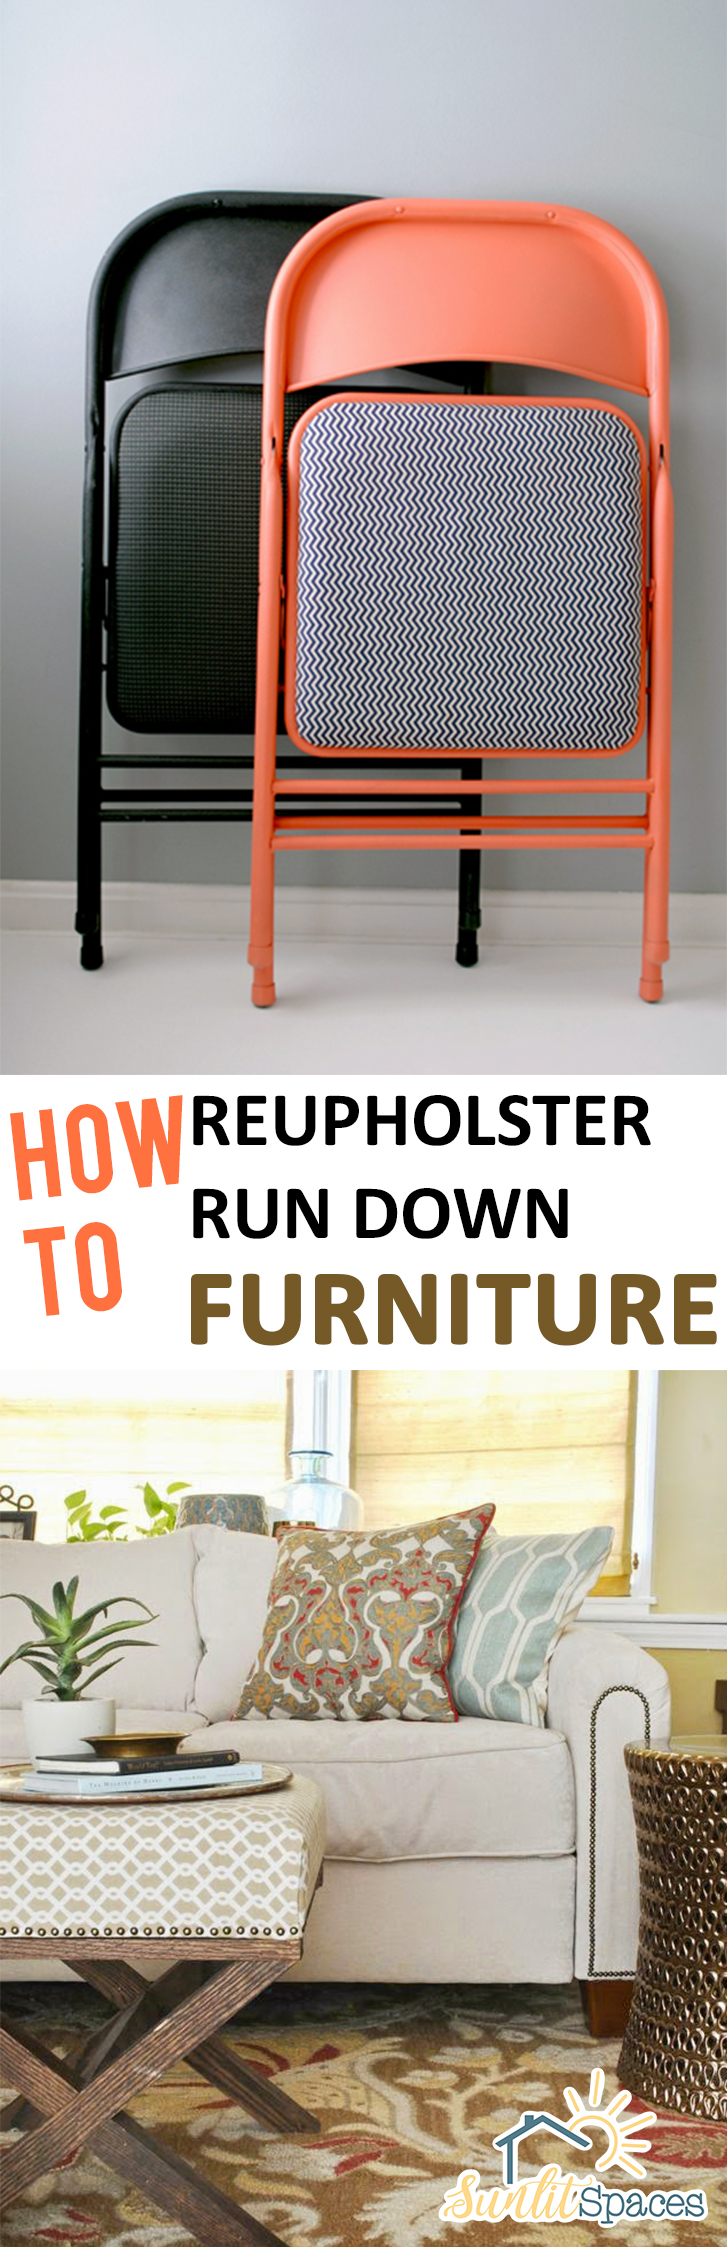 How To Rehupolster Furniture, How To Upgrade Furniture, Furniture  Remodeling, How To Remodel